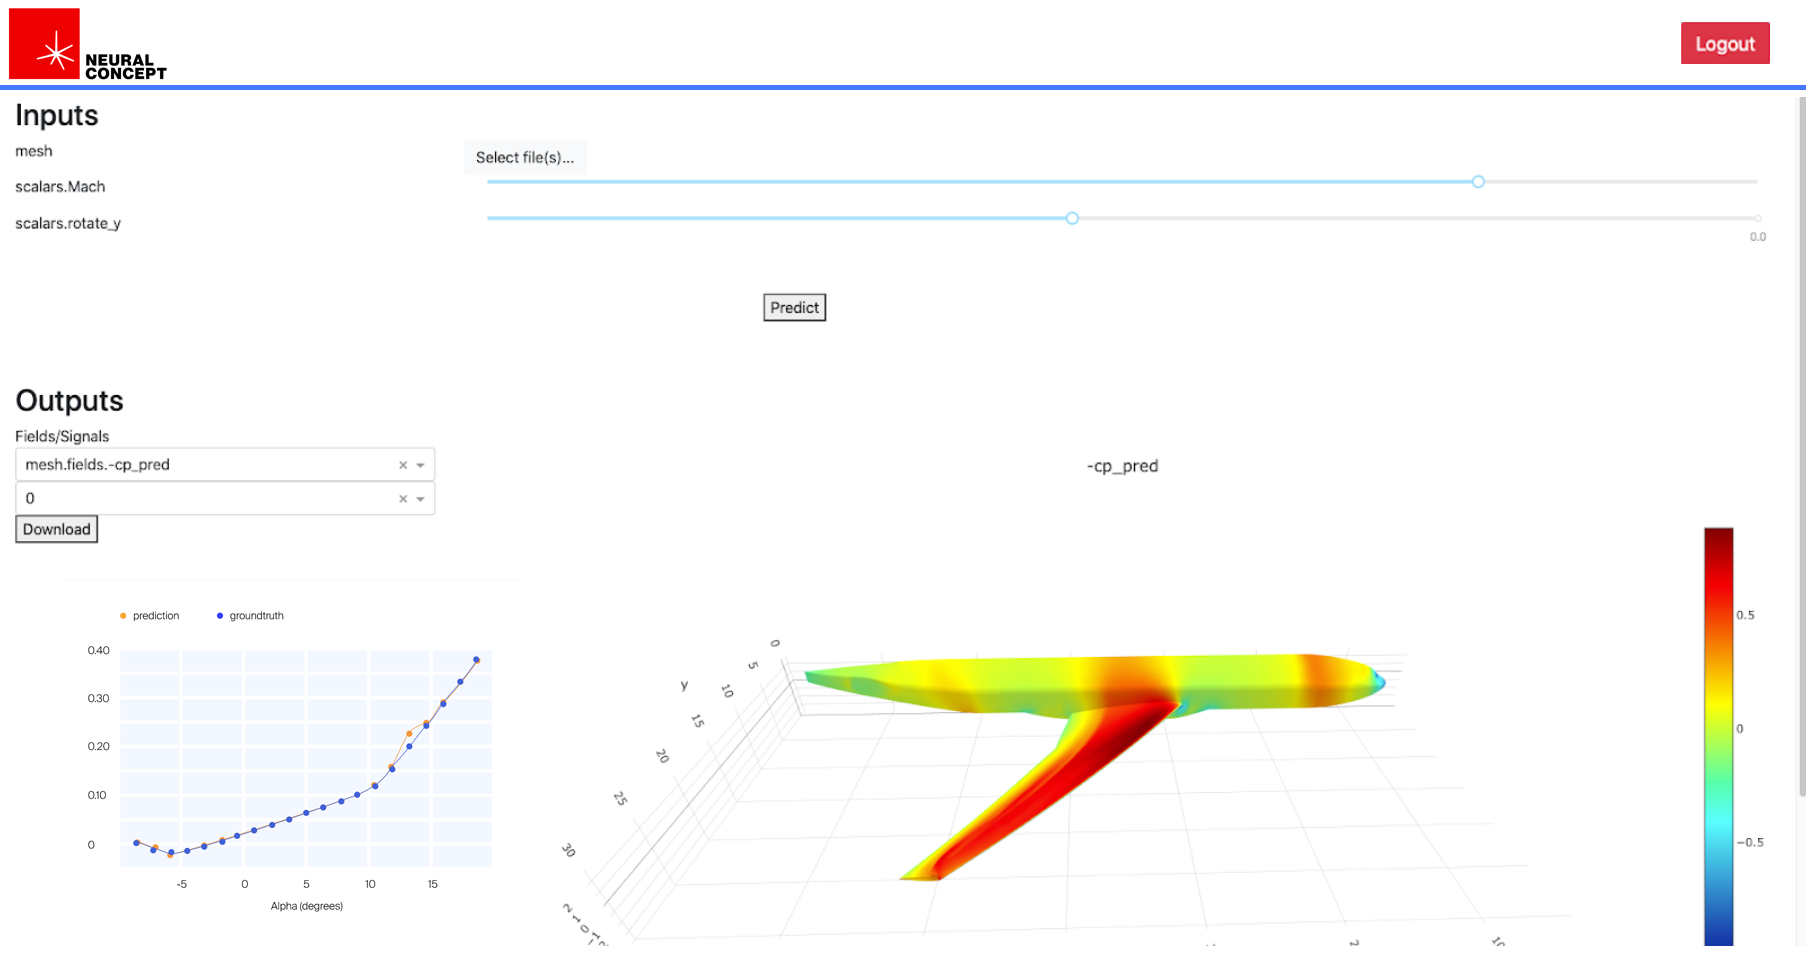 NCS visualization in software